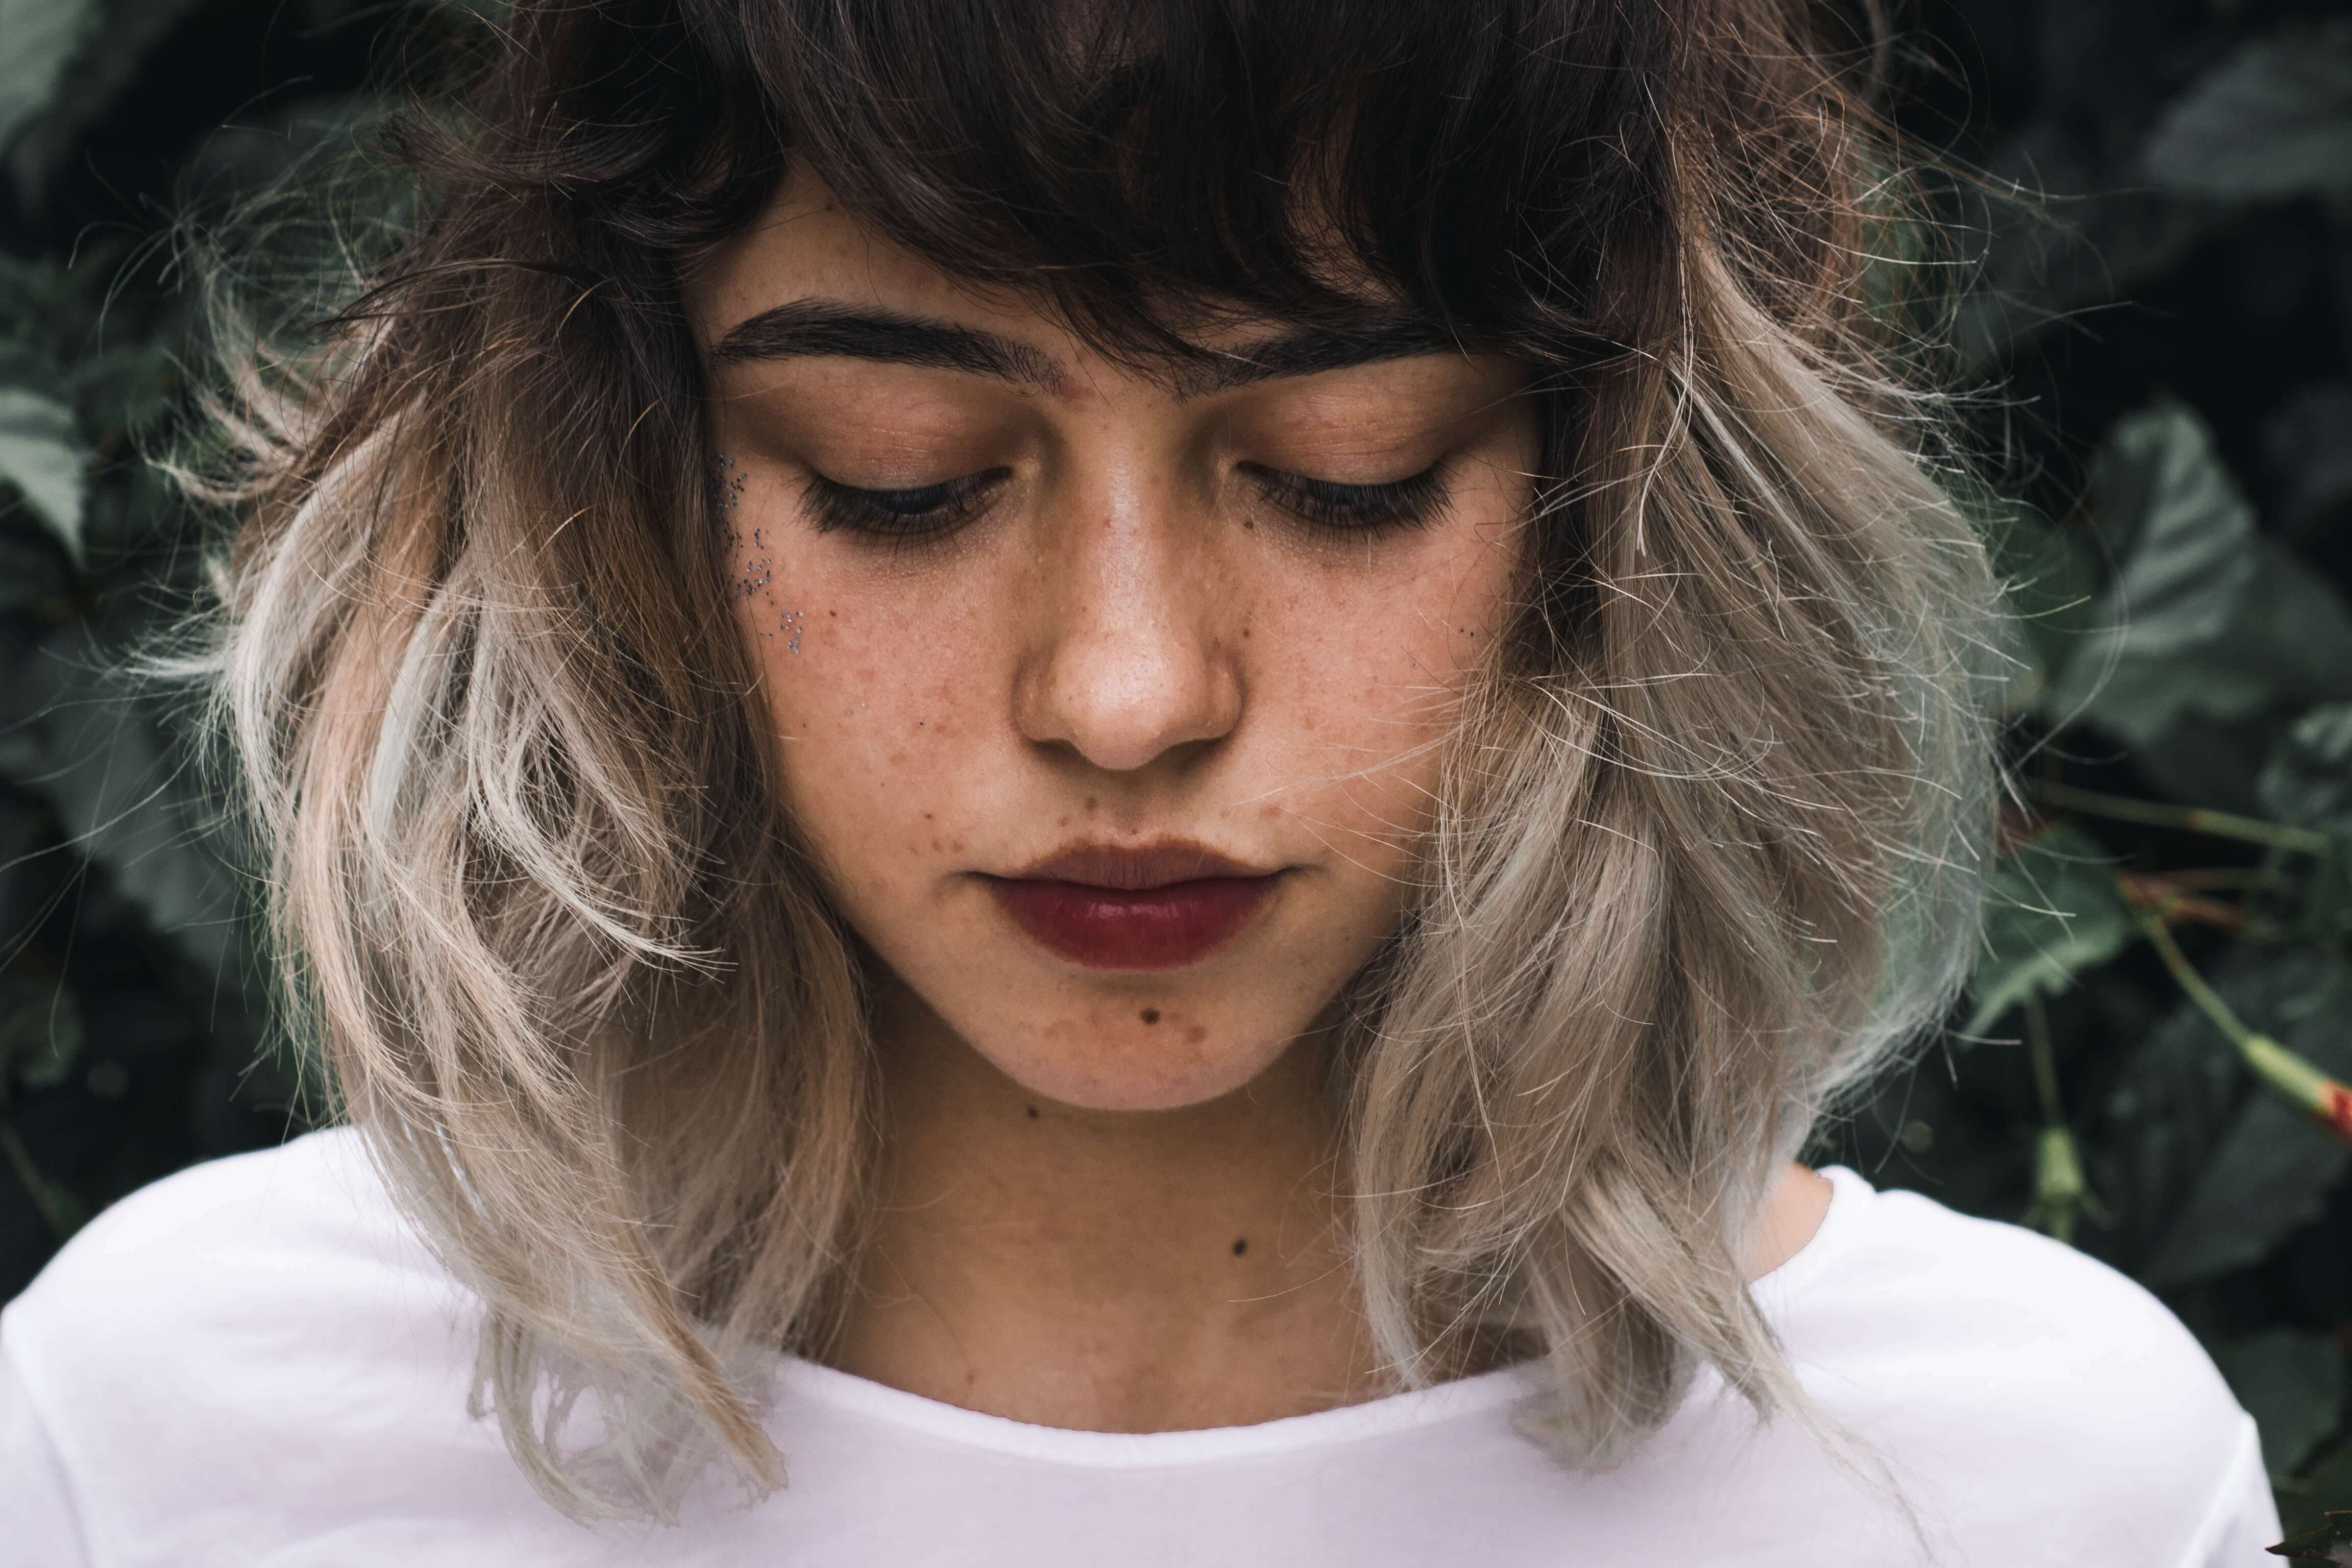 a girl with borderline personality disorder looking down with white and black beautiful hairs